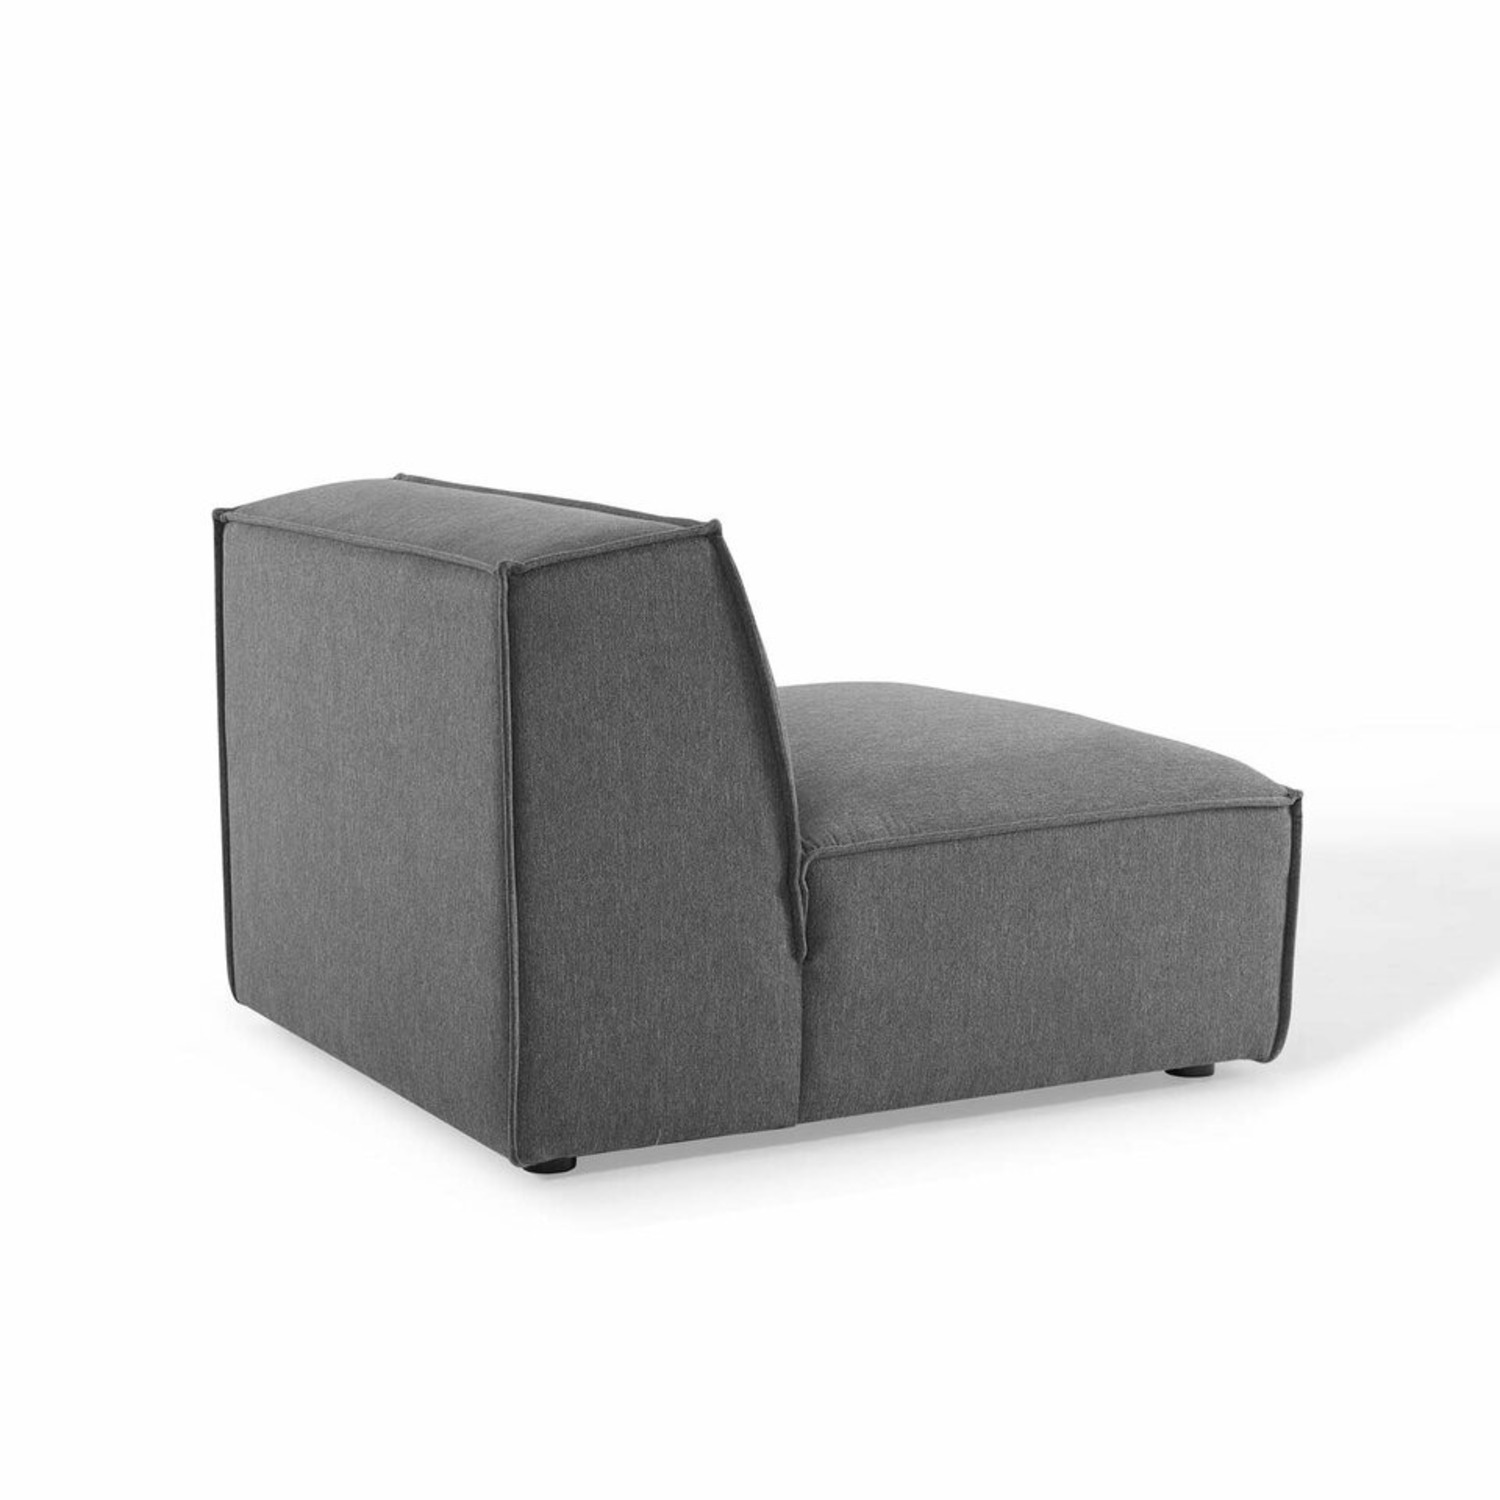 4-Piece Sectional Sofa In Charcoal Upholstery - image-8